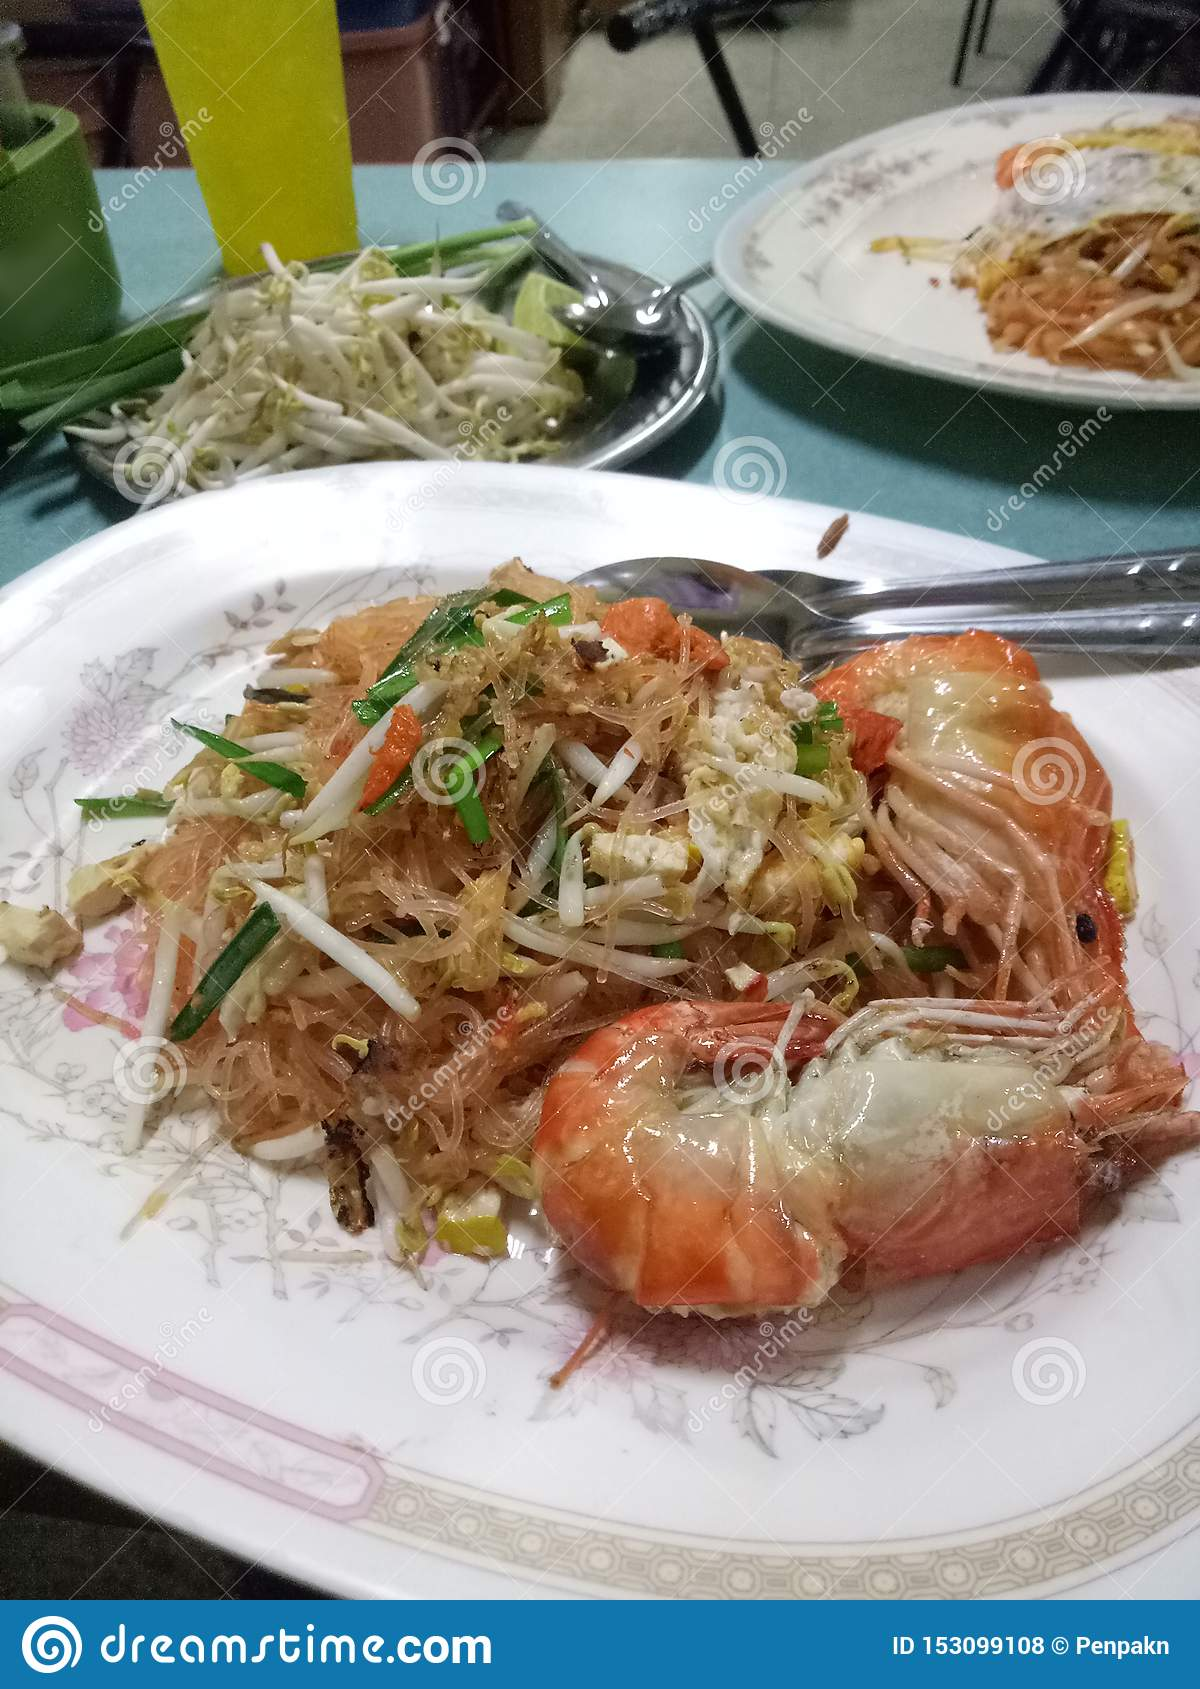 Pad Thai Goong Sod name food Fried Rice Sticks with Shrimp Add bean sprouts and stir the eggs and stir, then serve on a plate